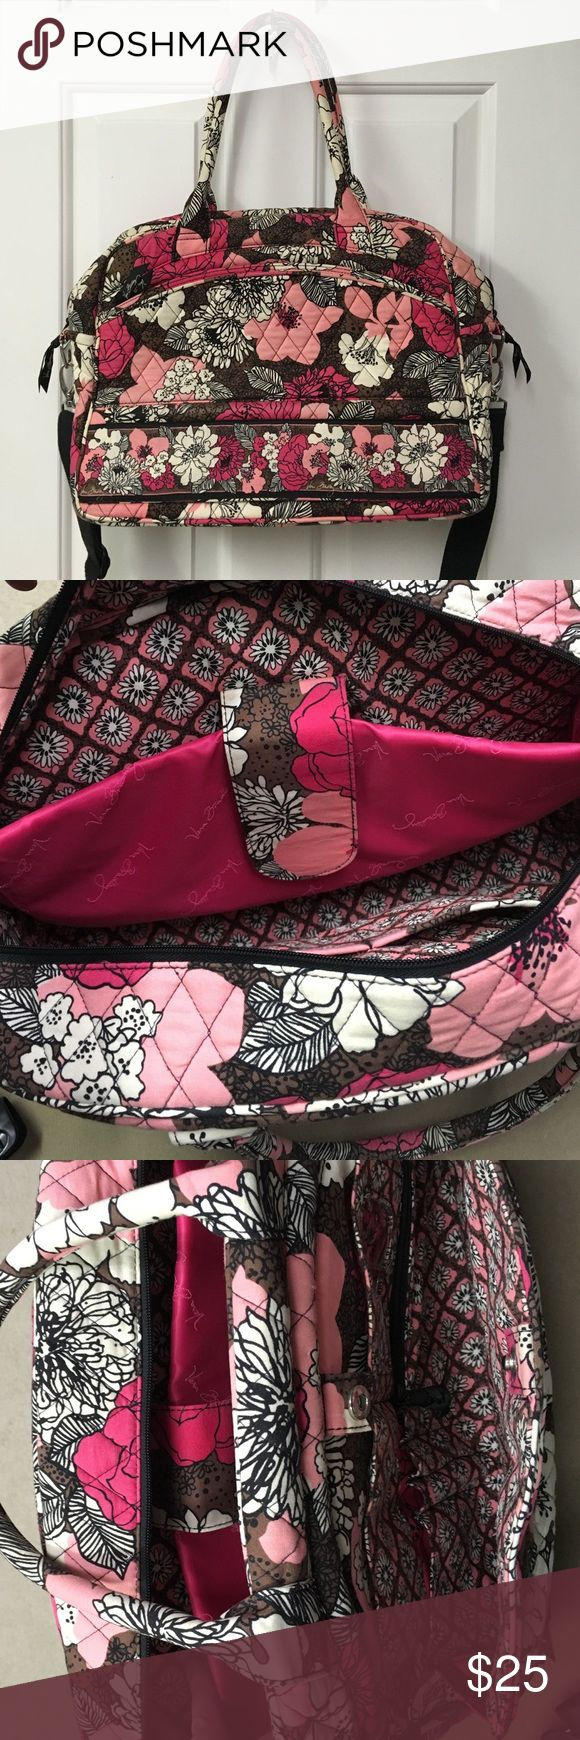 Vera Bradley laptop bag Vera Bradley laptop bag, with shoulder strap and tote bag bundles. Padded Velcro laptop sleeve inside. 2 inner pockets in large inside compartment. Outer pocket unzips and has card slots, zip pouch, and pen slots. Perfect for work. Small coffee stain on bottom, pictures. Otherwise great condition. Vera Bradley Bags Laptop Bags